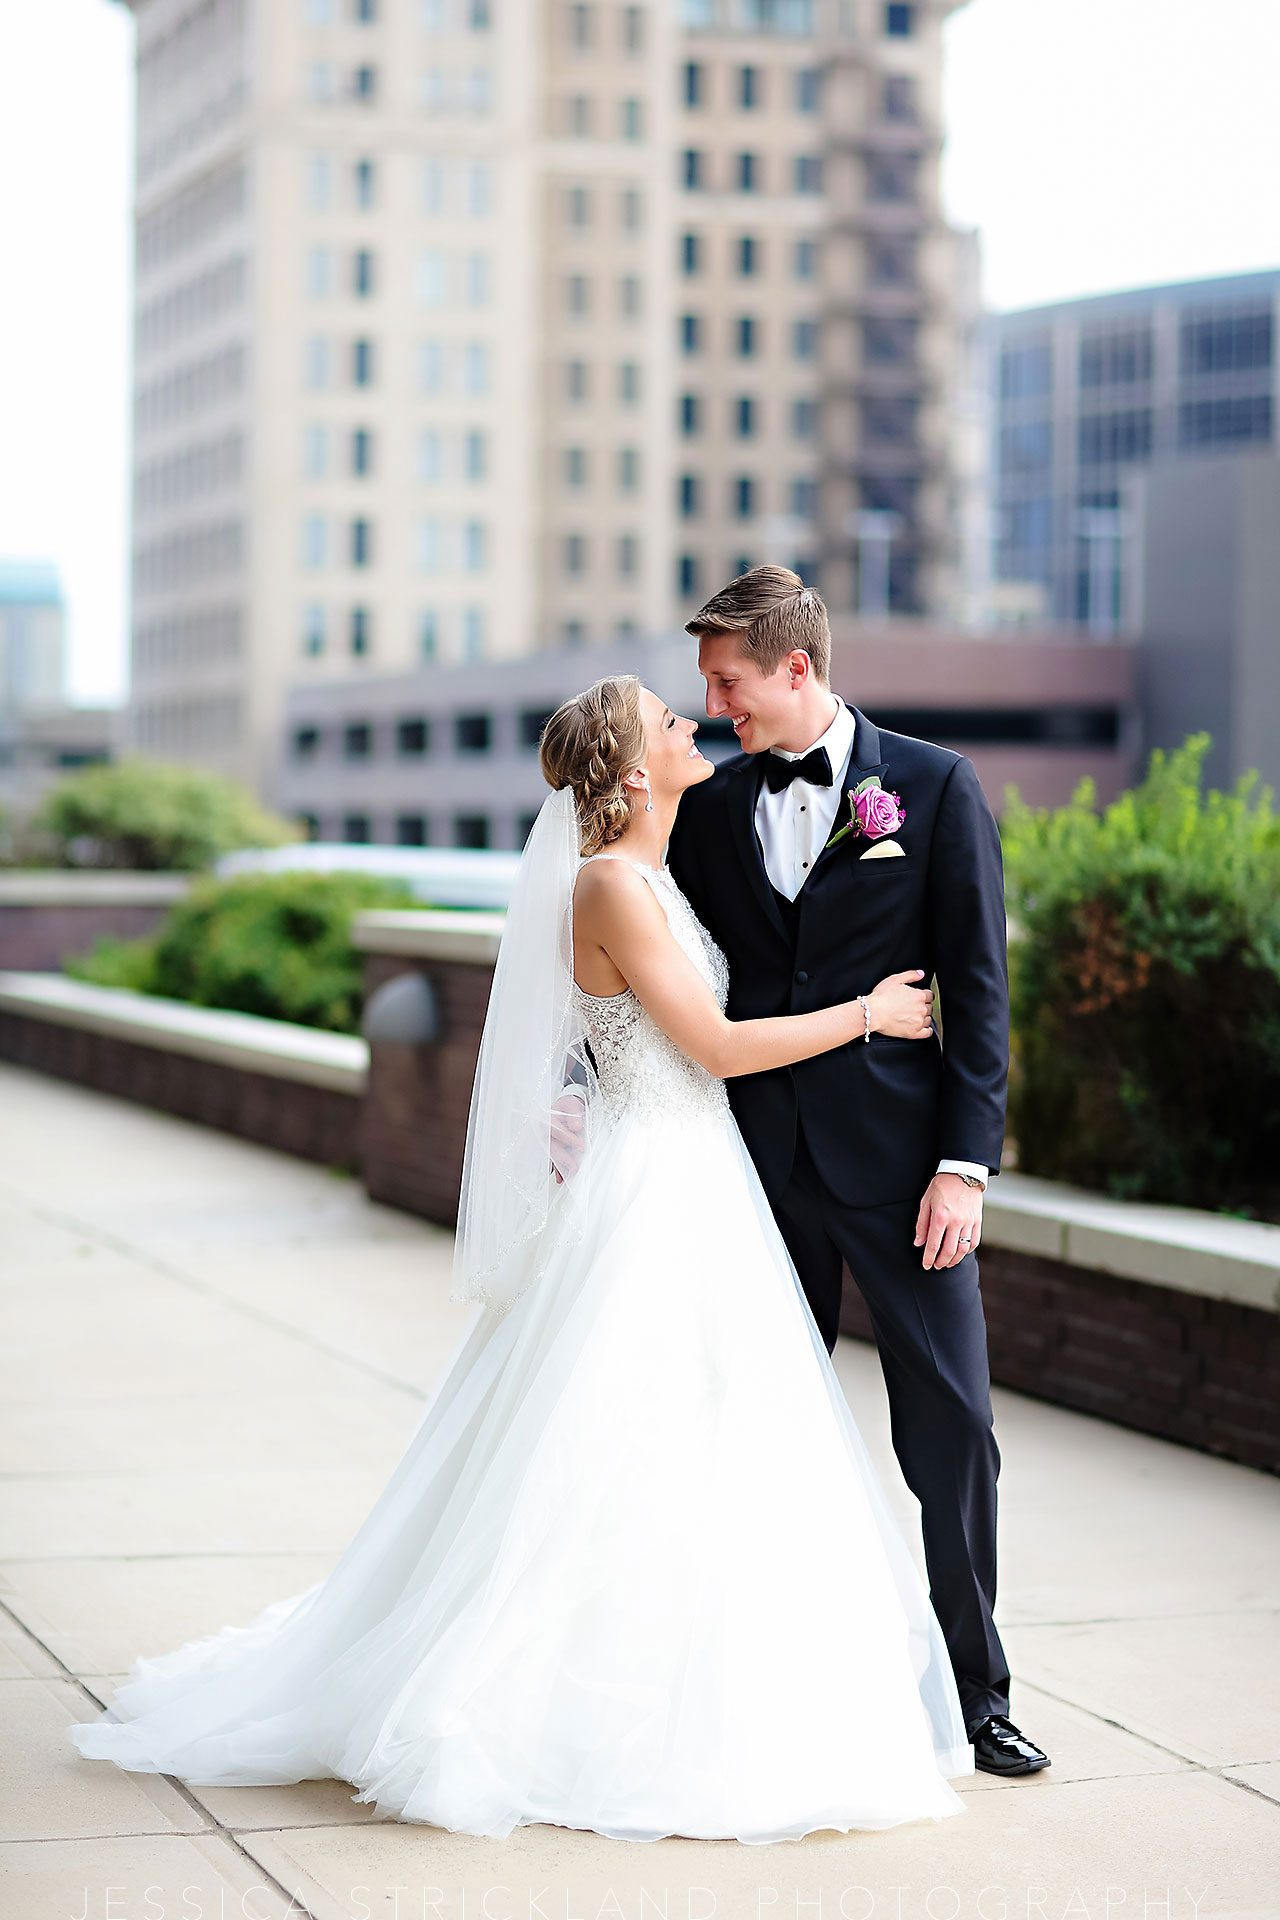 Serra Alex Regions Tower Indianapolis Wedding 268 watermarked